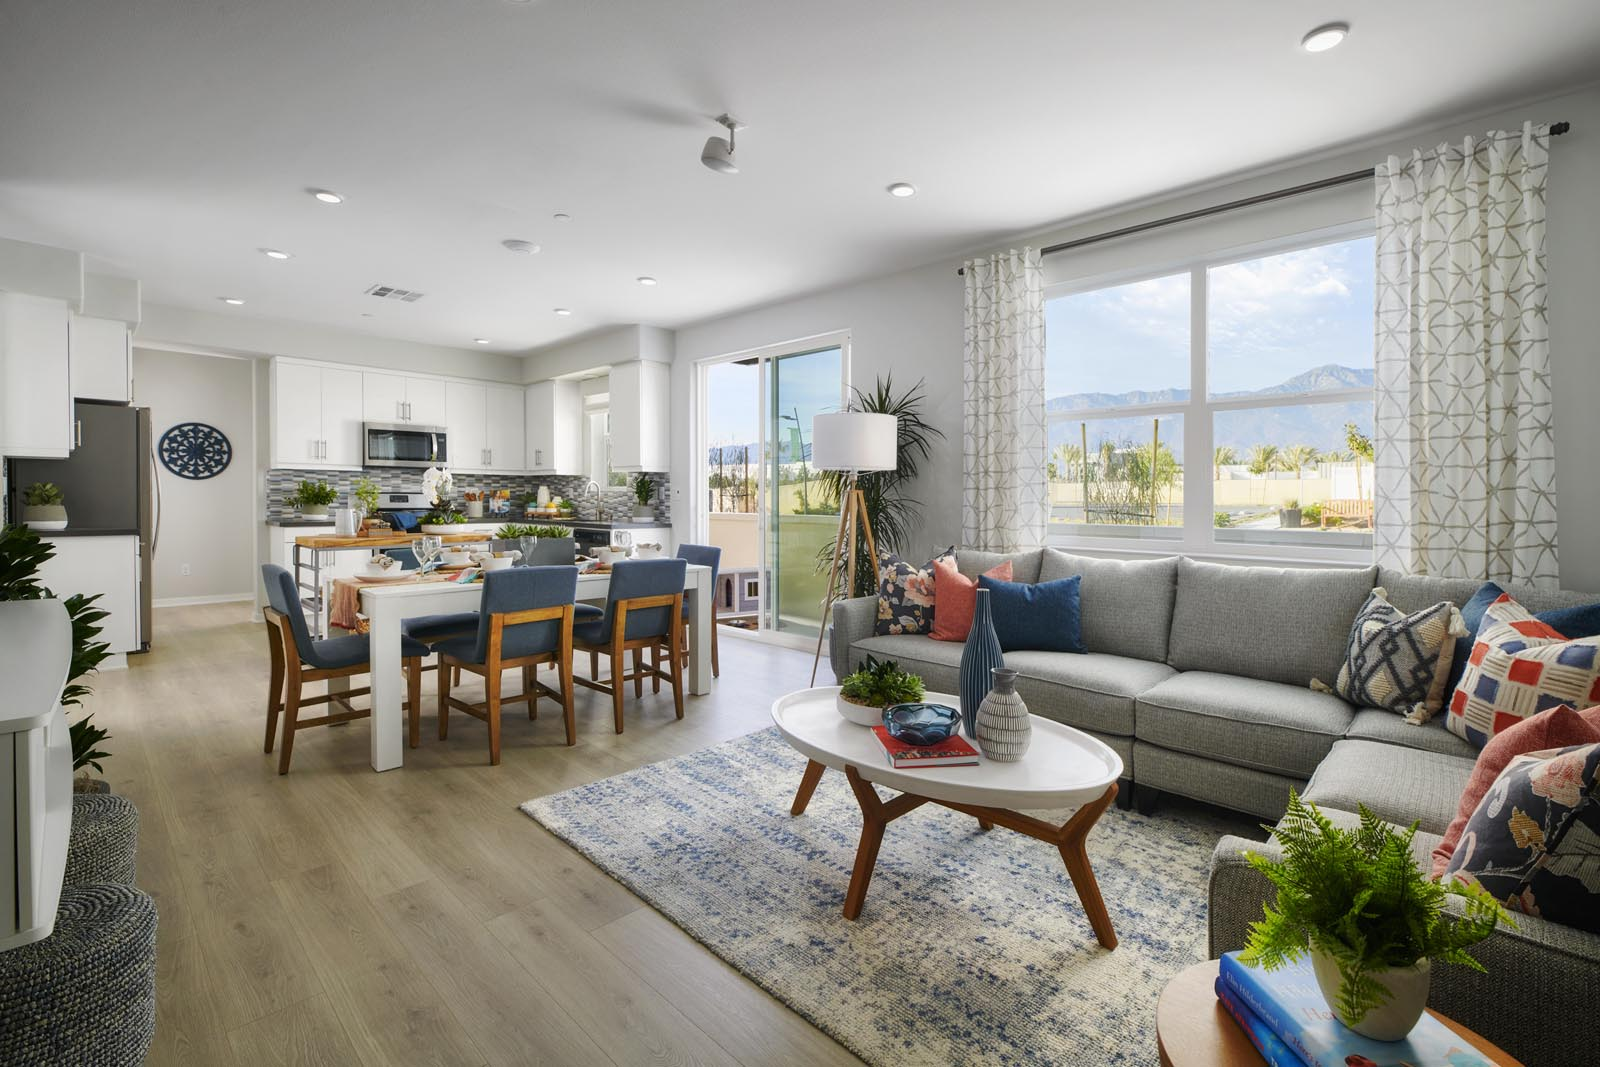 Great Room to Dining Area | Residence 1 | Enliven | New Homes in Rancho Cucamonga, CA | Van Daele Homes